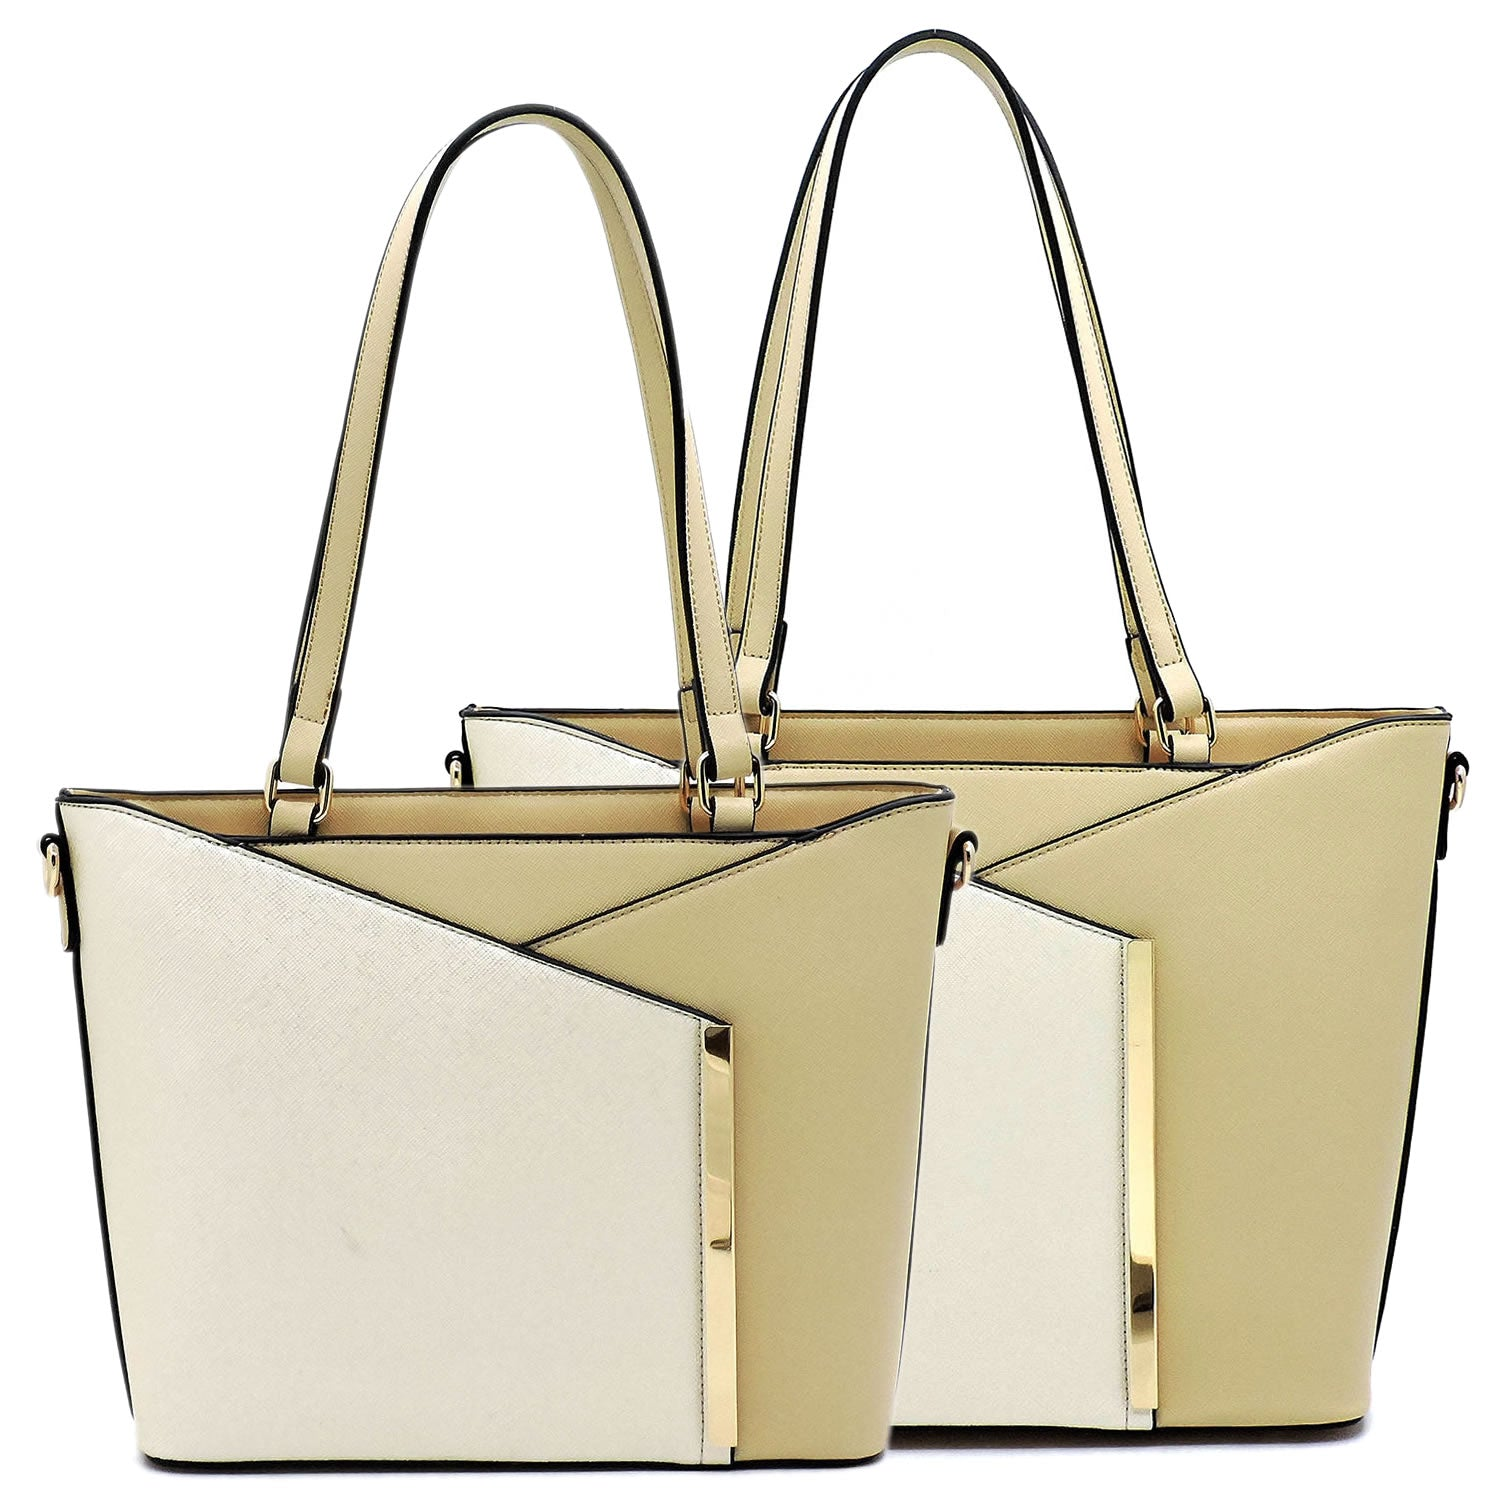 Colorblock 2-in-1 Handbag Set Khaki/Cream